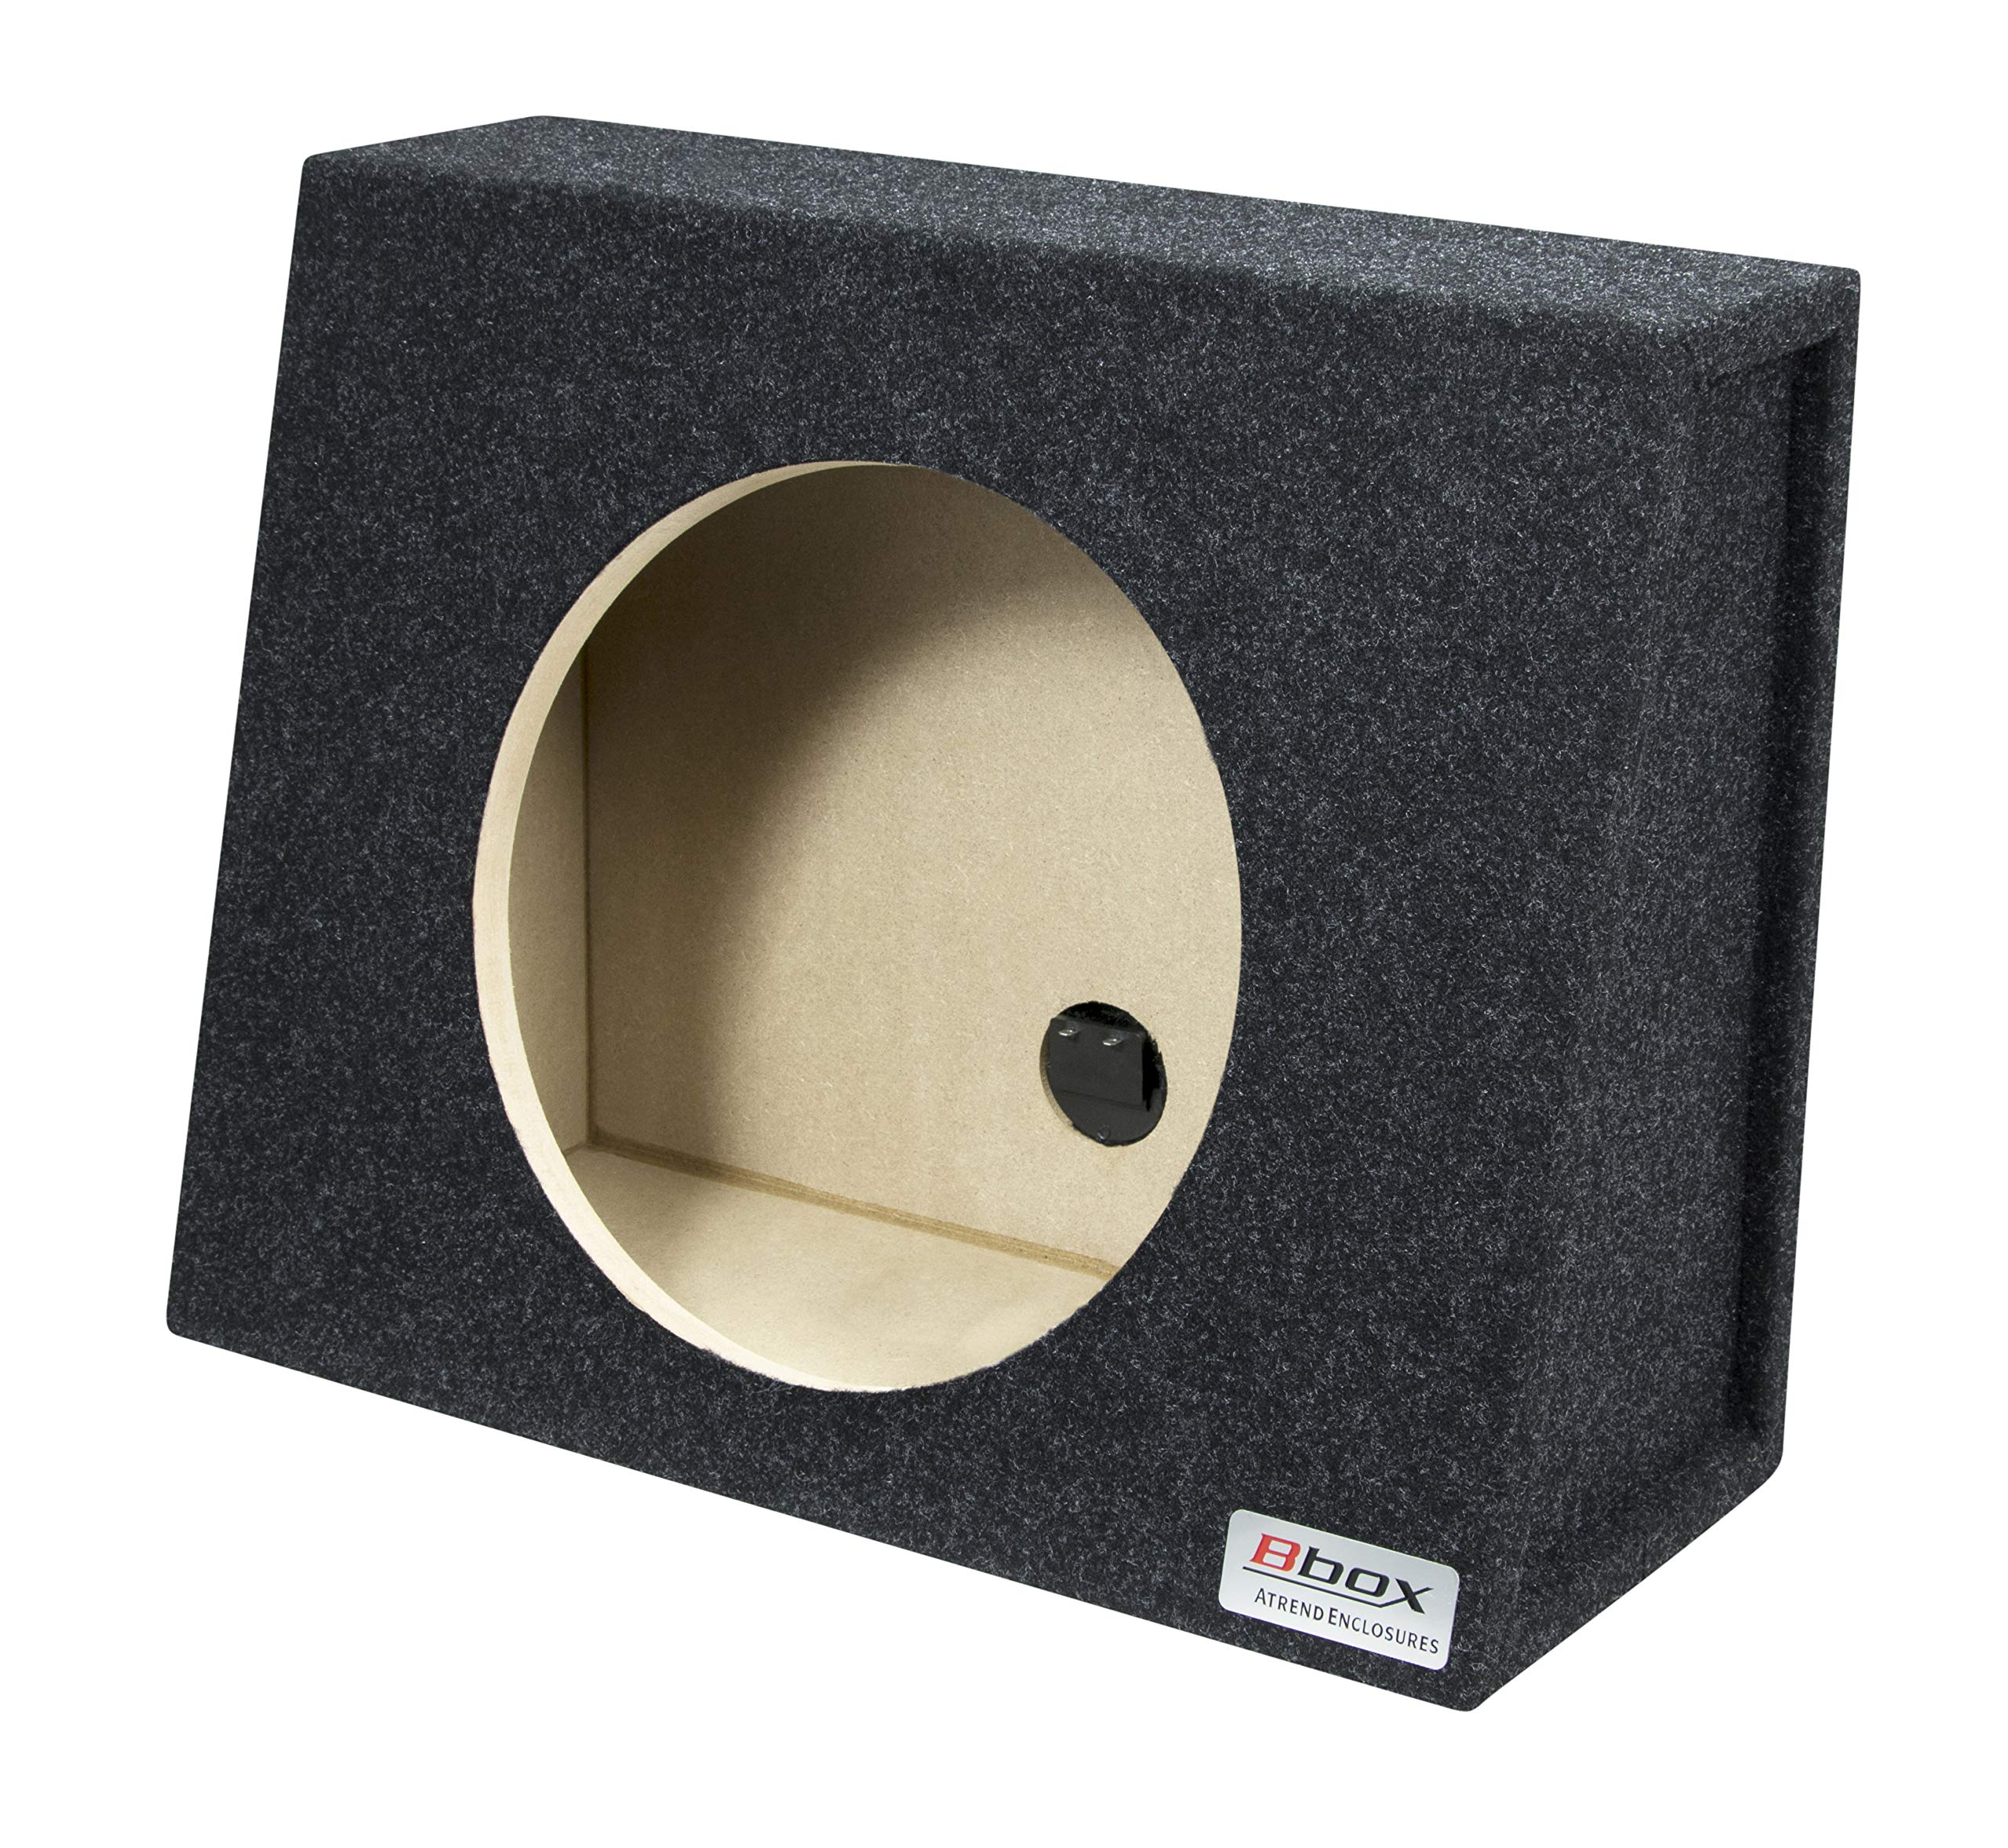 Bbox E12ST Single 12'' Sealed Carpeted Truck Subwoofer Enclosure by Atrend